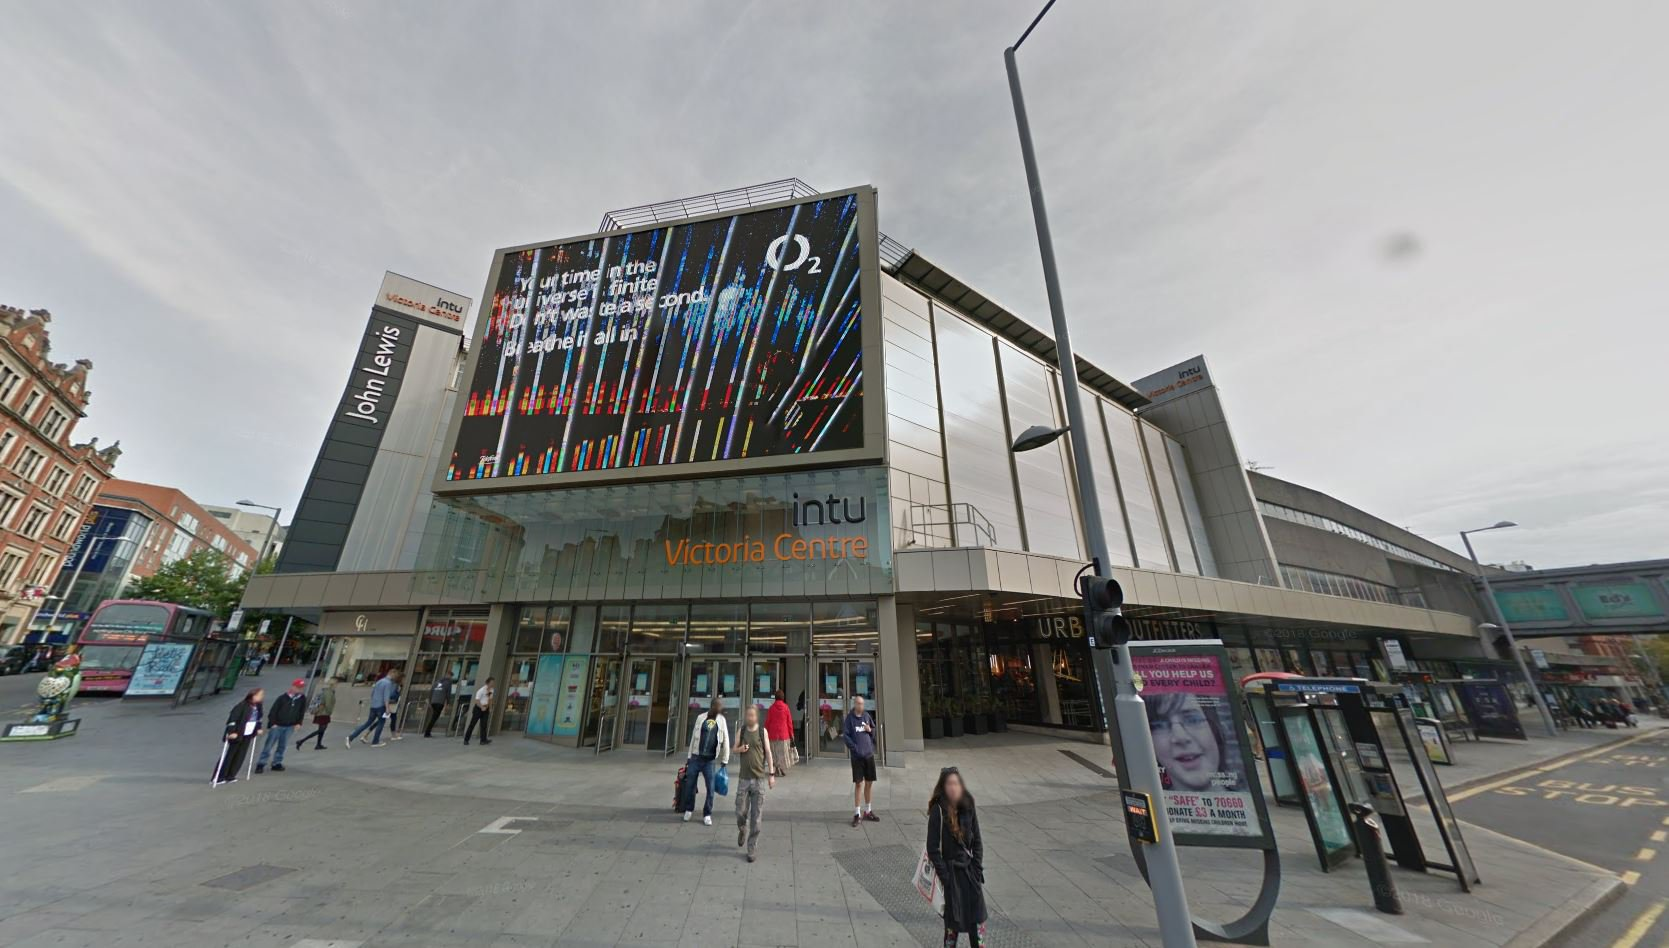 Woman, 74, falls to her death in Urban Outfitters